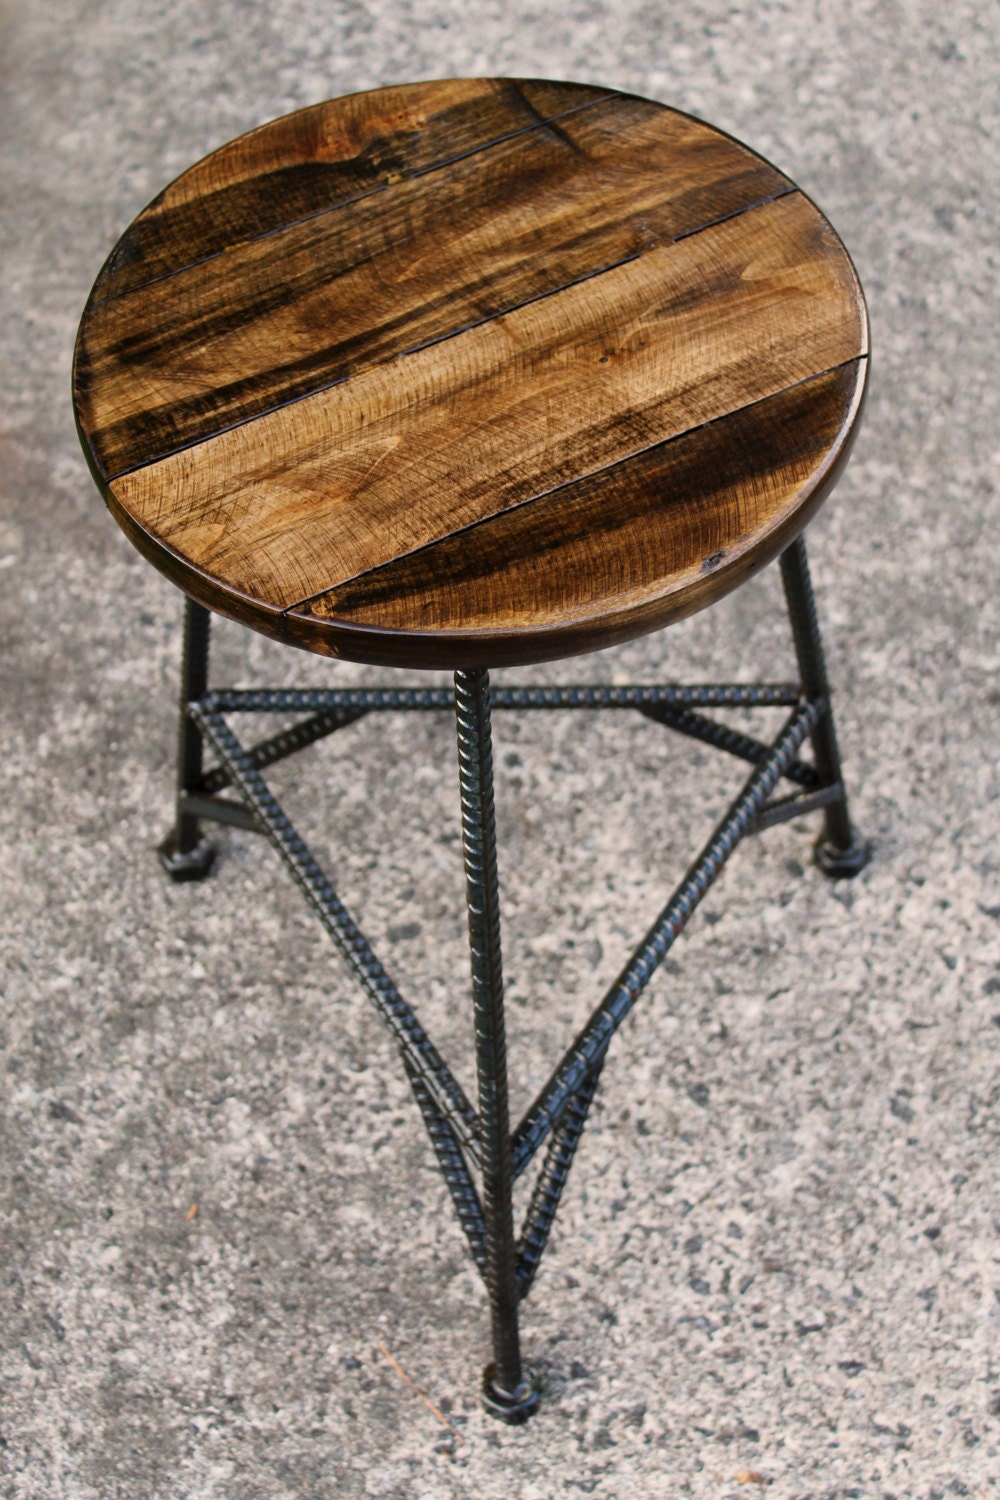 Reclaimed Wood Bar Stools Metal Bar Stools Industrial Bar